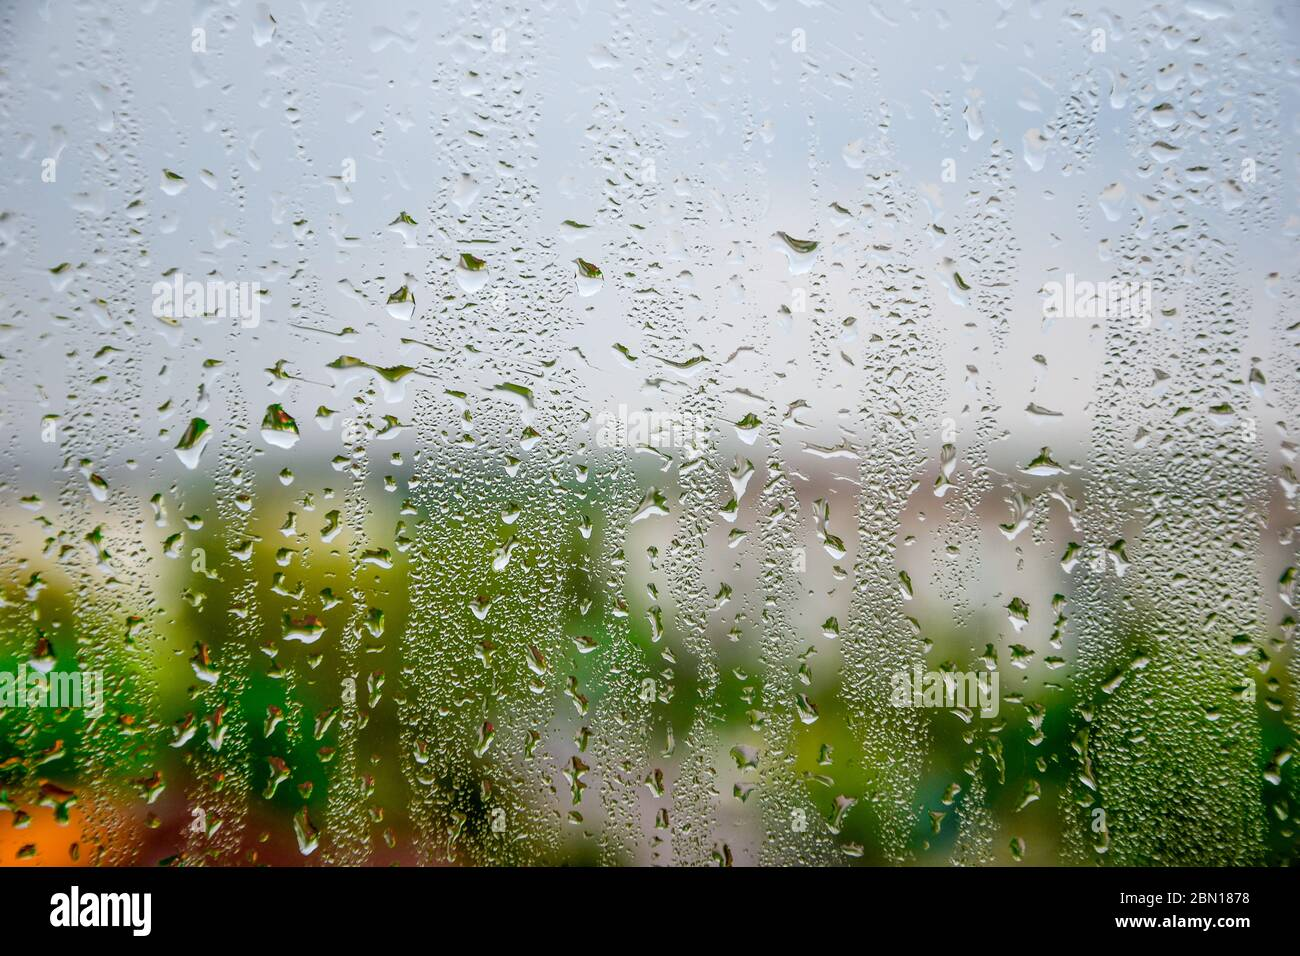 background of water drops on the window Stock Photo